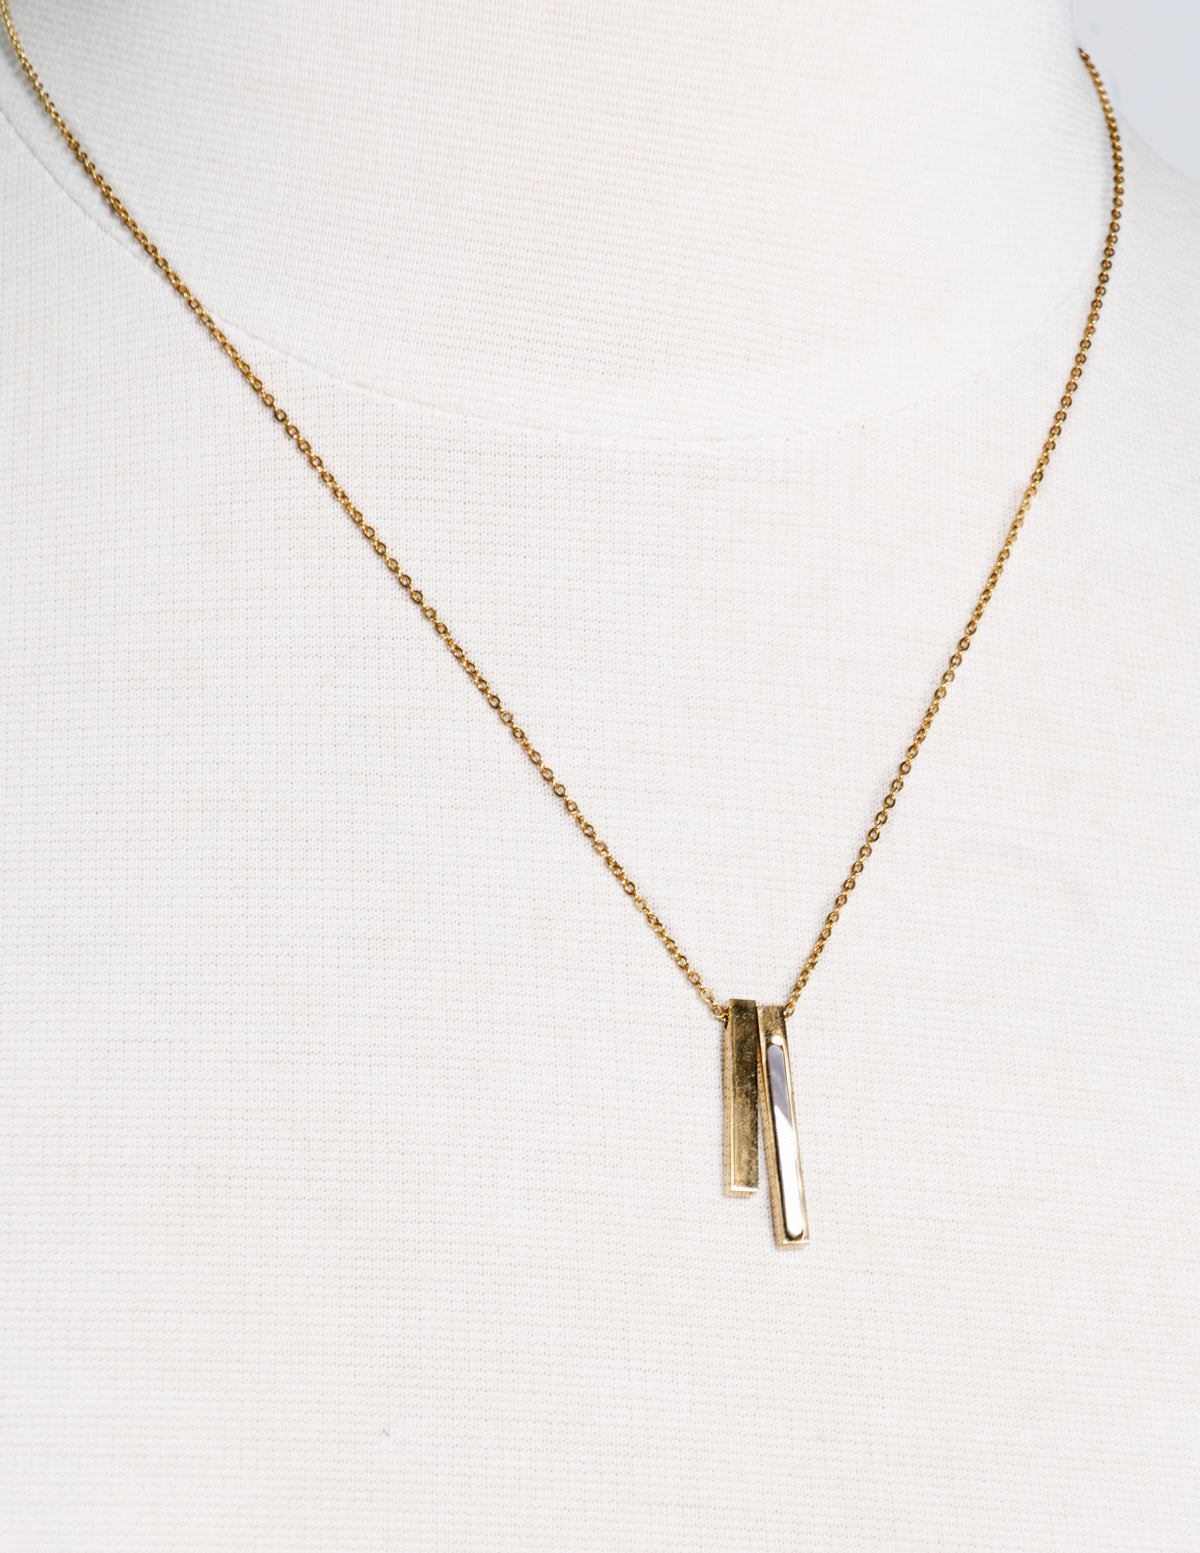 CHLOE2 necklace pendent (GOLD) - TARNISH FREE - ebrook lael